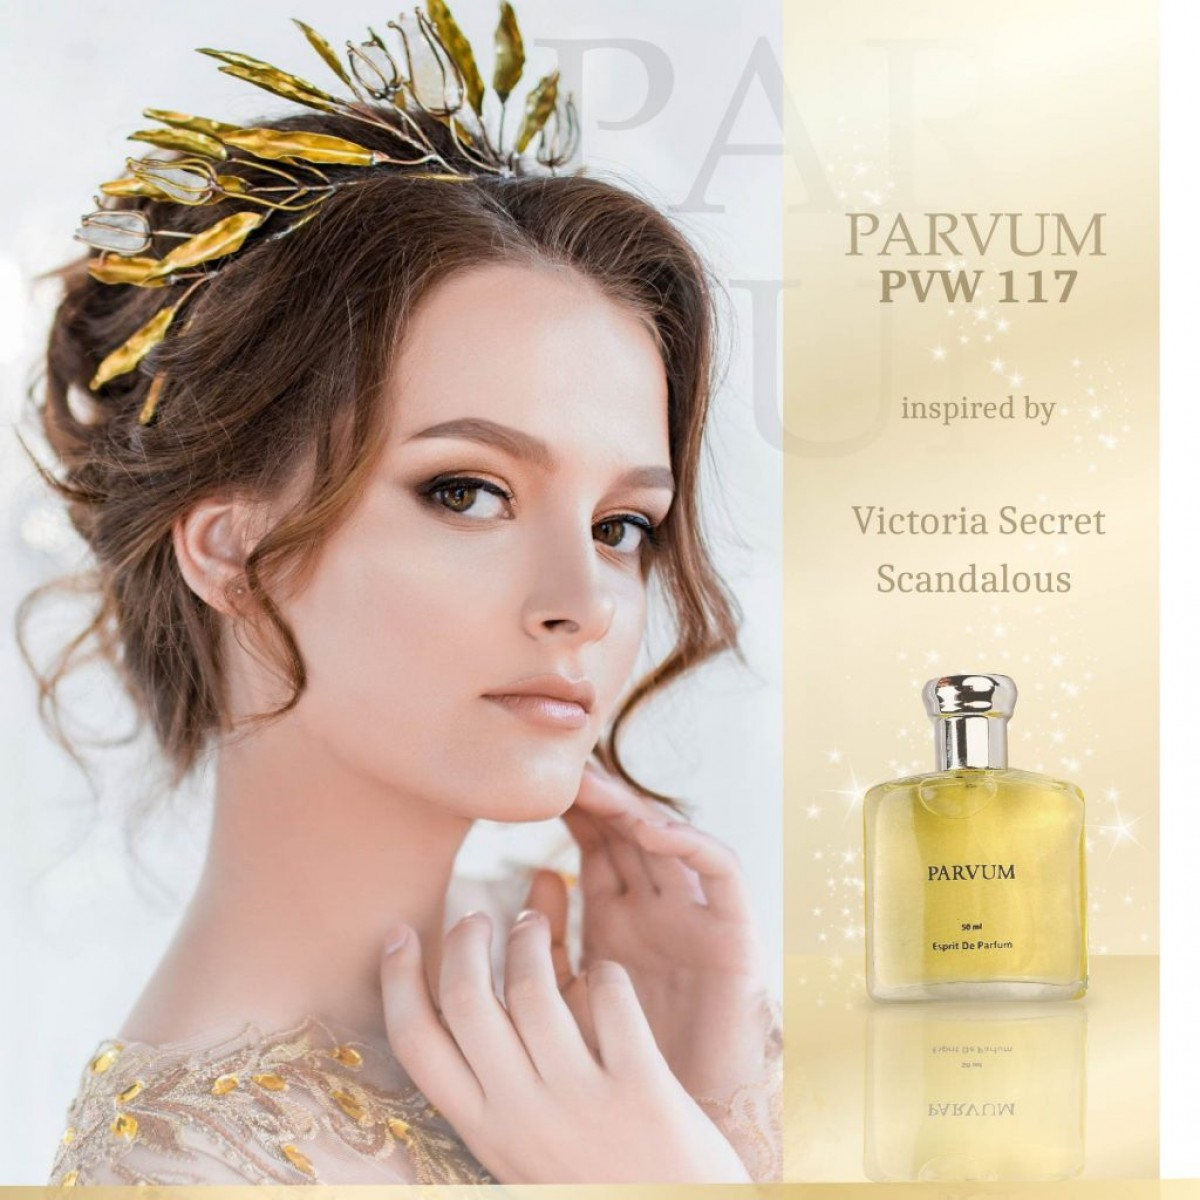 PARVUM Inspired By Victoria Secret Scandalous - Hara & Co